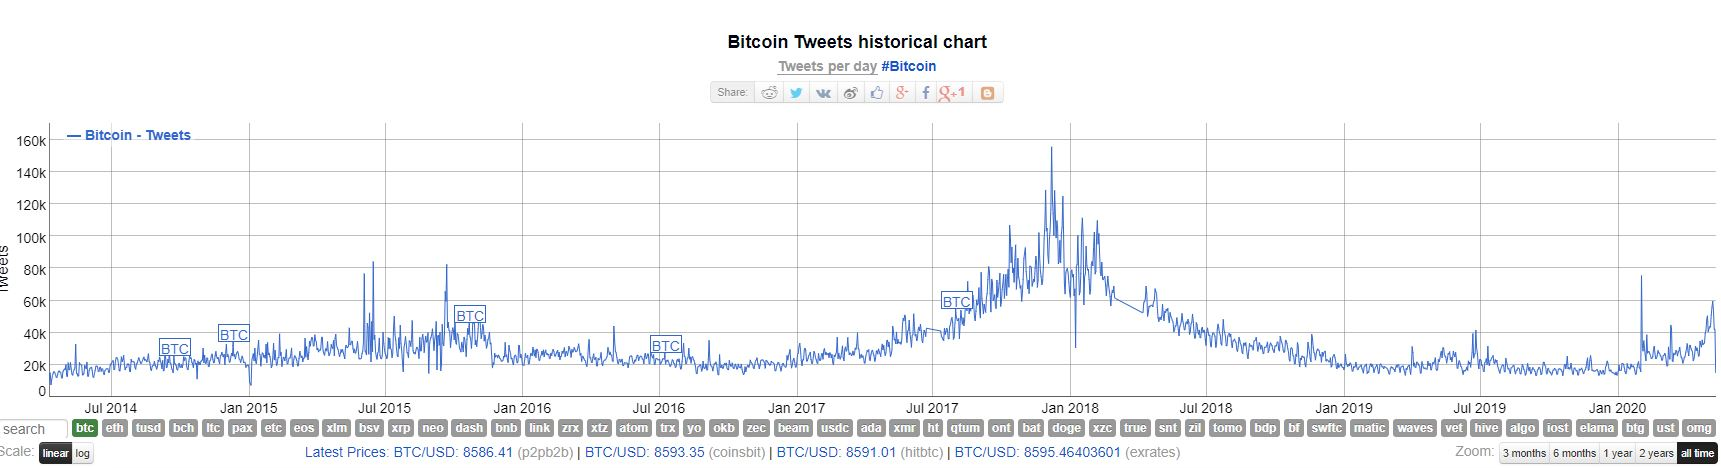 Bitcoin Tweets, All Time